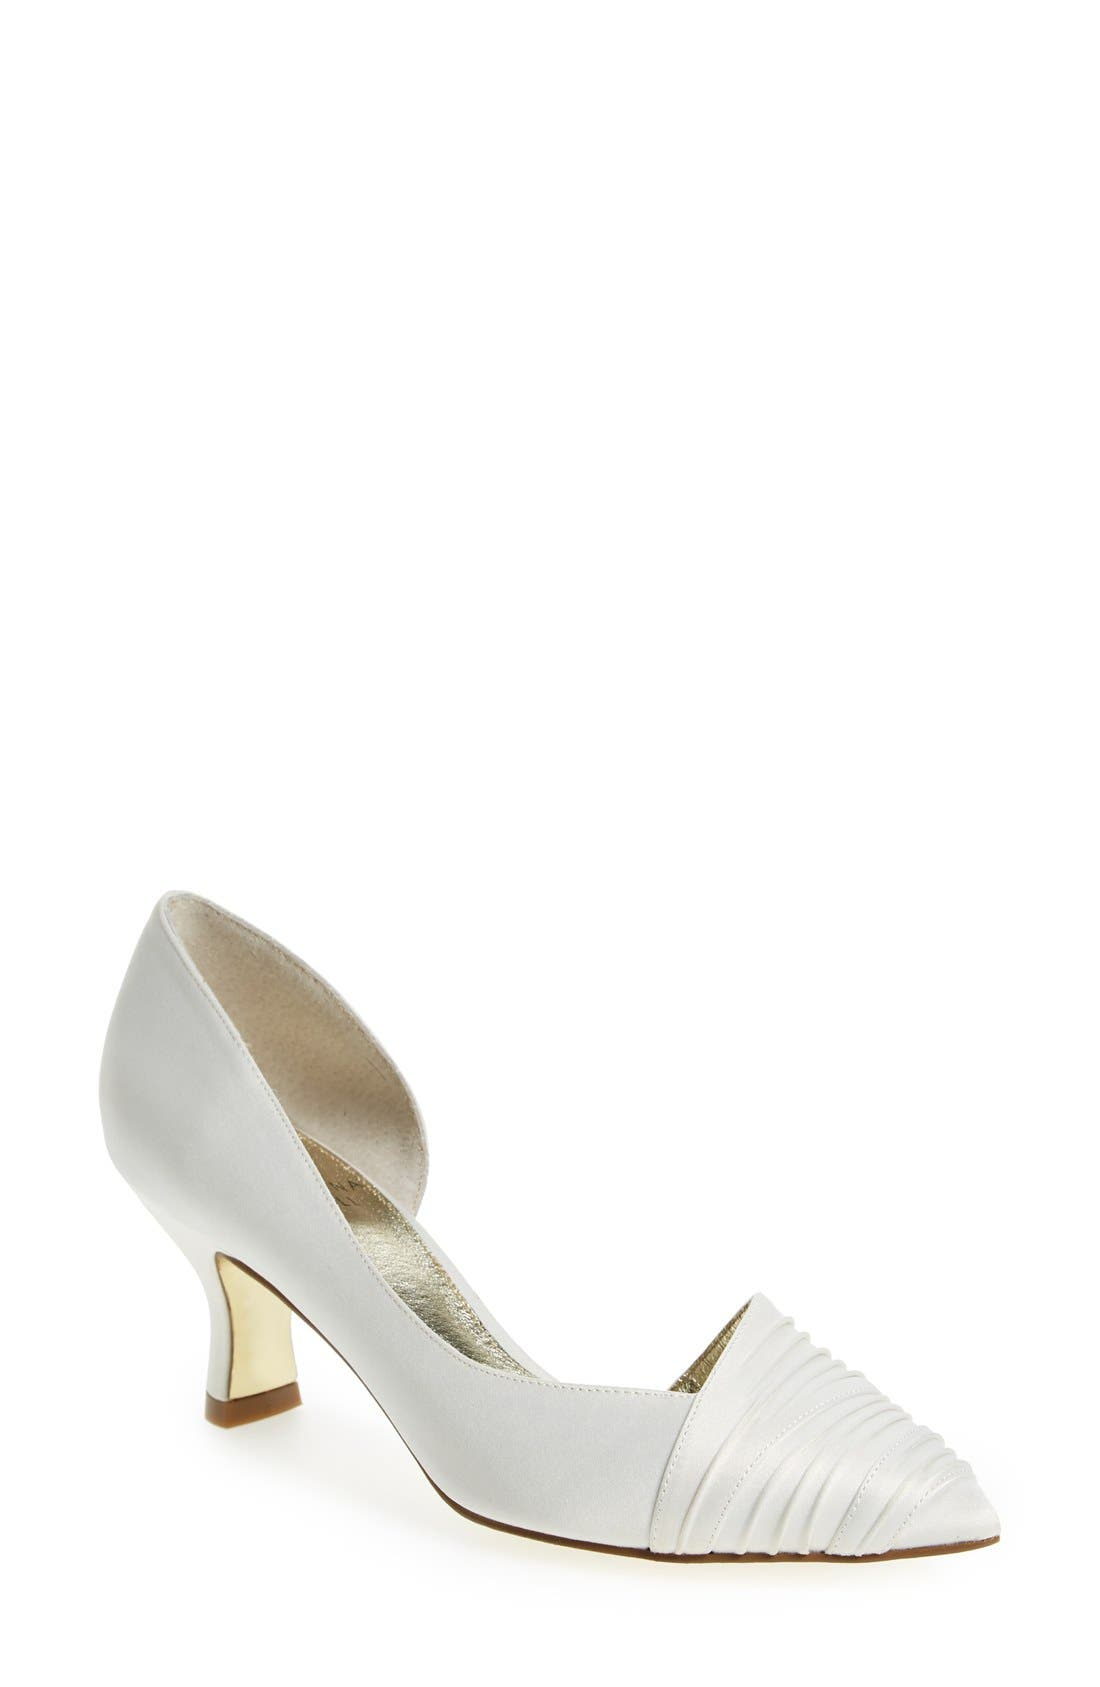 Alternate Image 1 Selected - Adrianna Papell 'Harriet' Half d'Orsay Pump (Women)